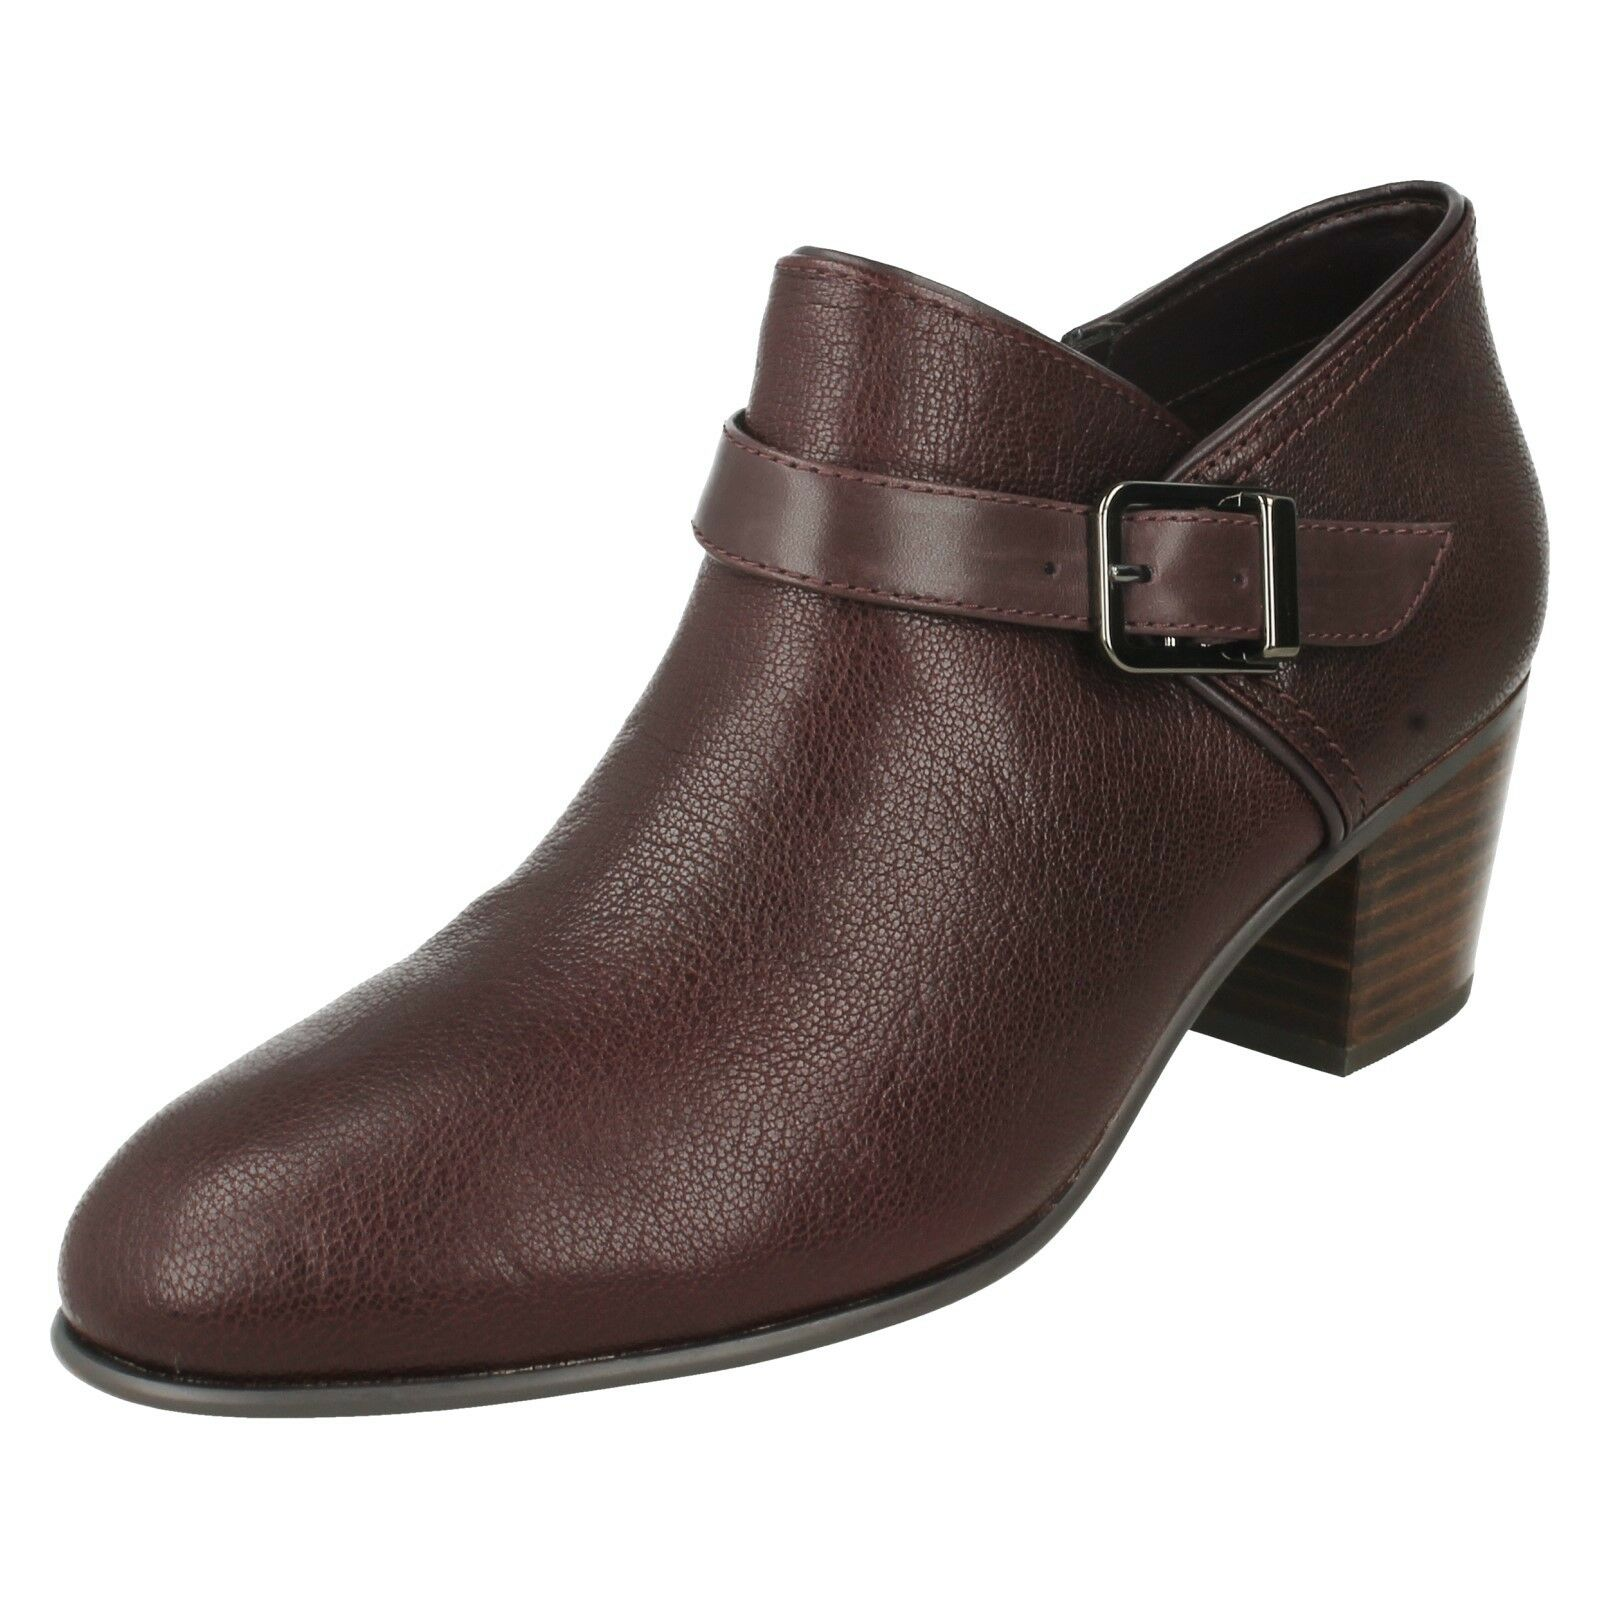 LADIES CLARKS LEATHER LEATHER LEATHER ZIP MID HEEL TROUSER ANKLE SHOE BOOTS SIZE MAYPEARL MILLA e57e0d